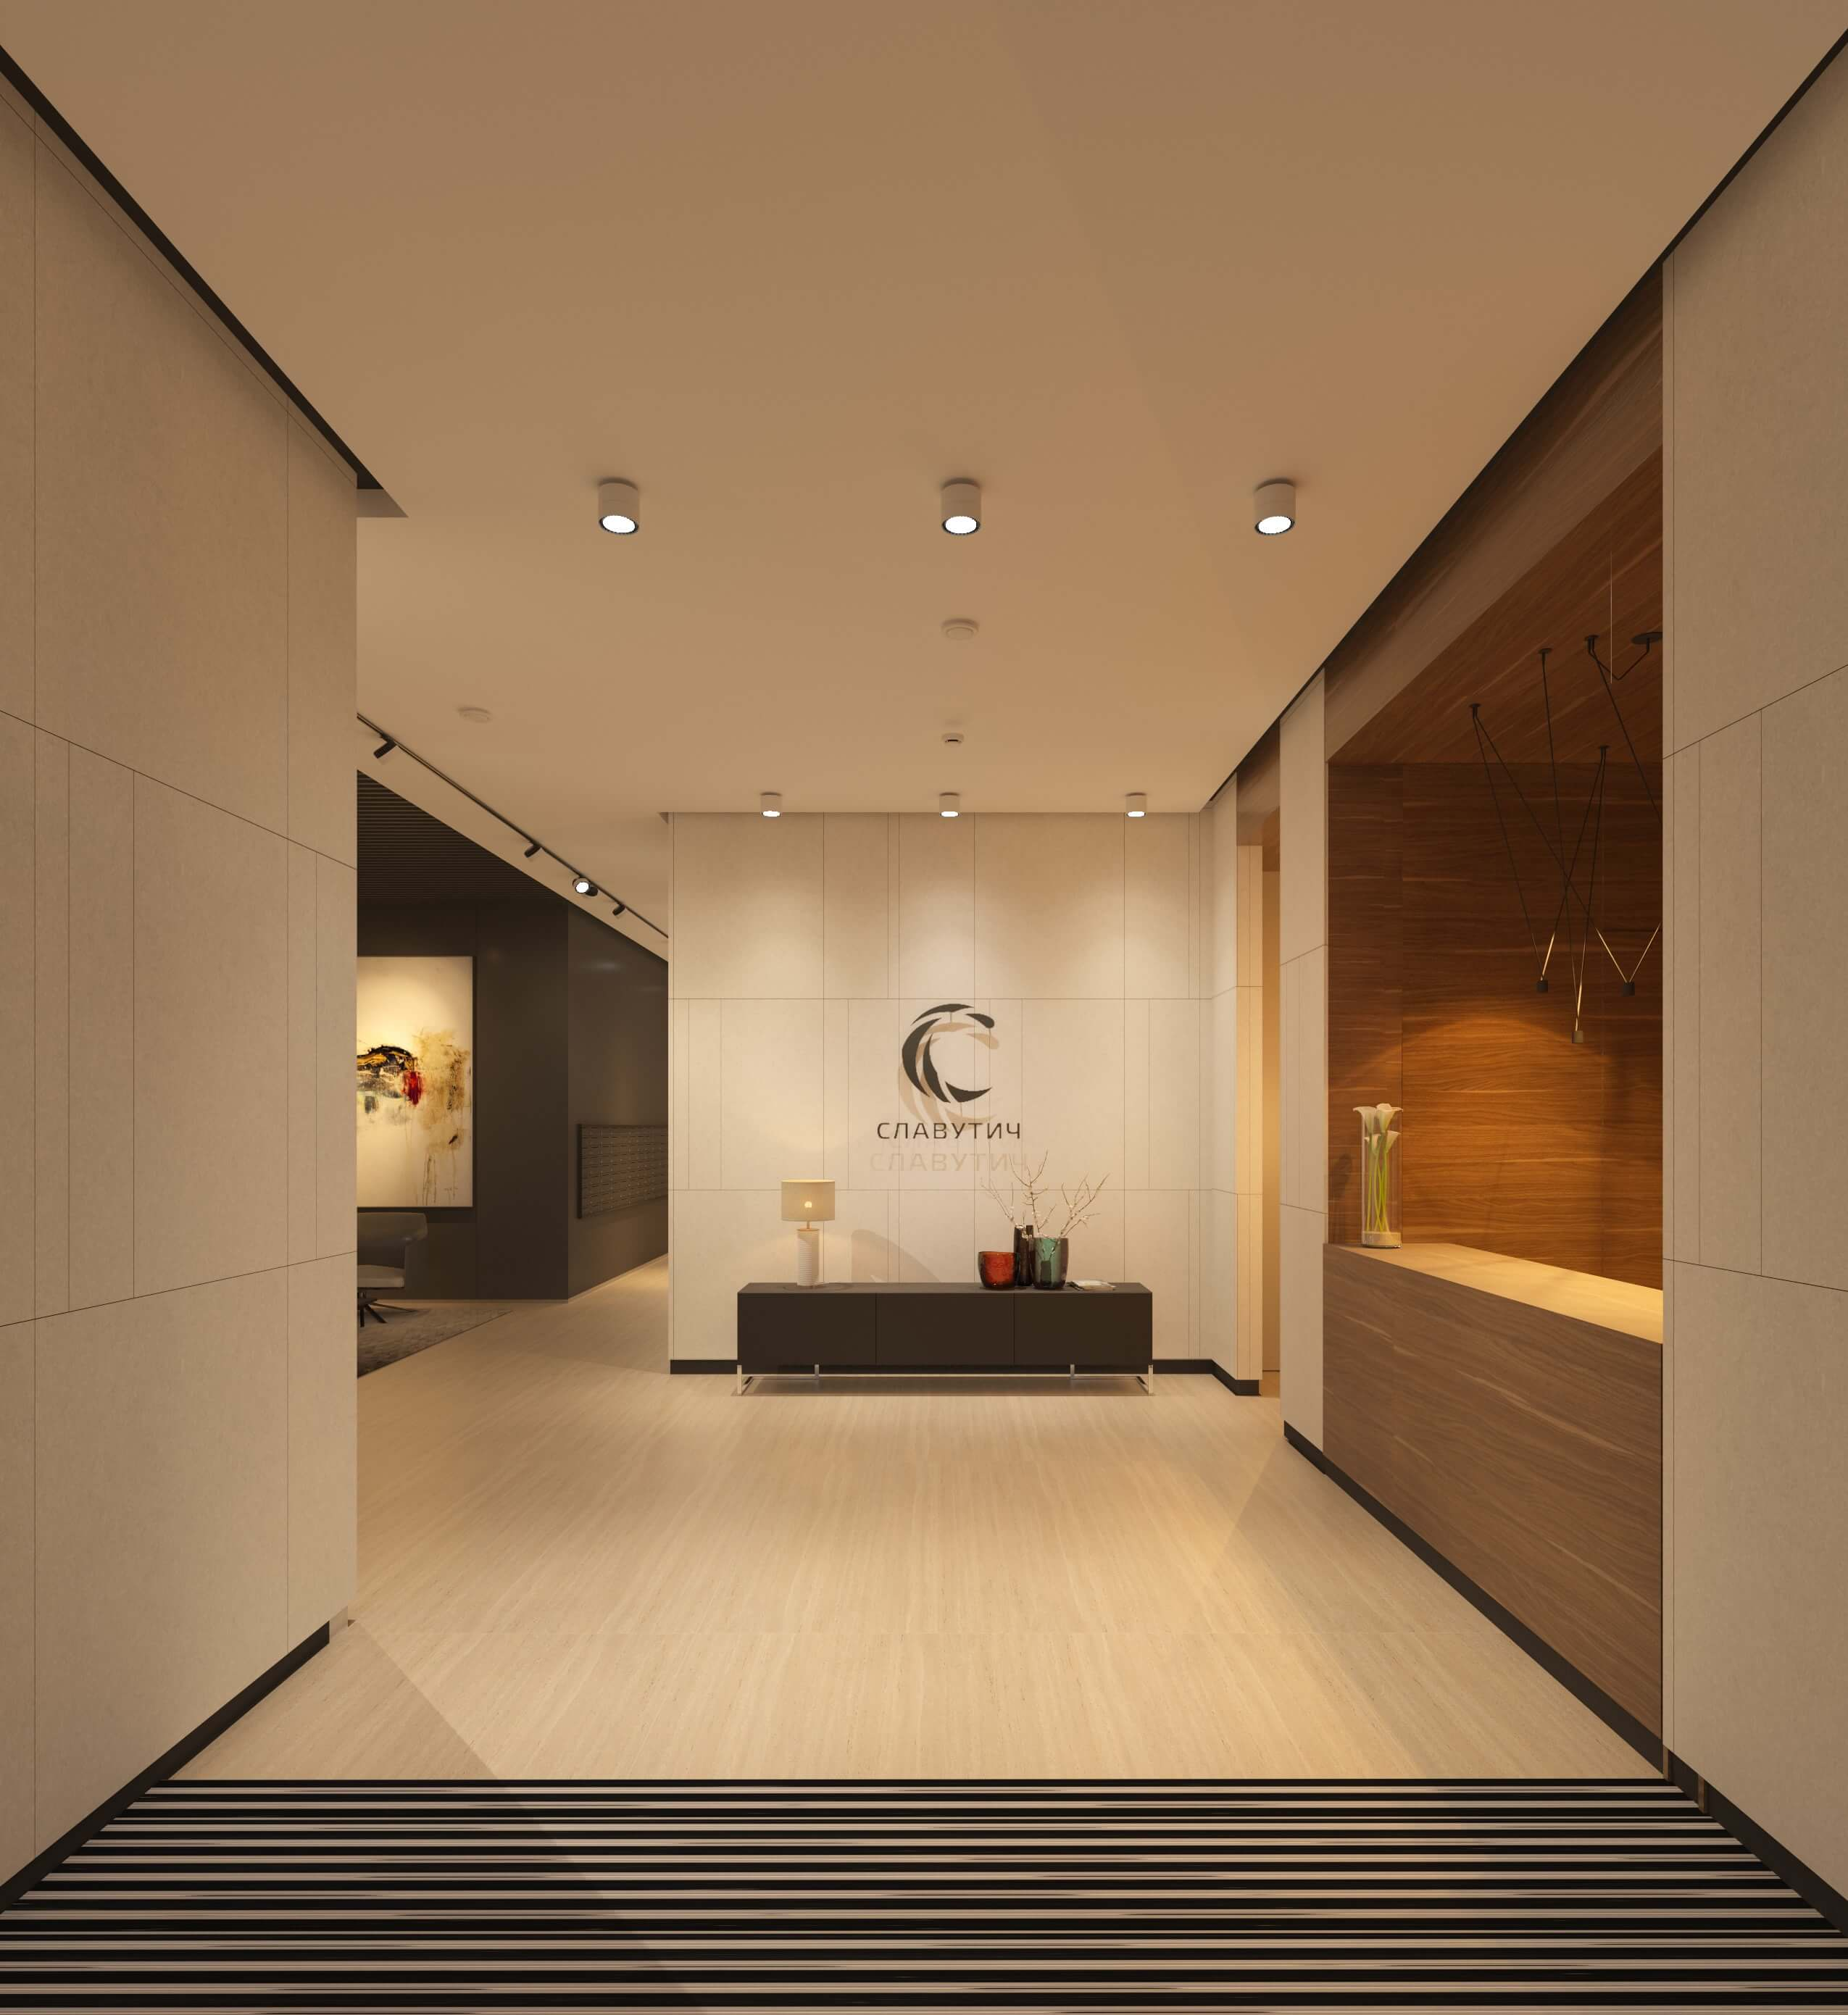 Common areas of modern residential complexes 6 2